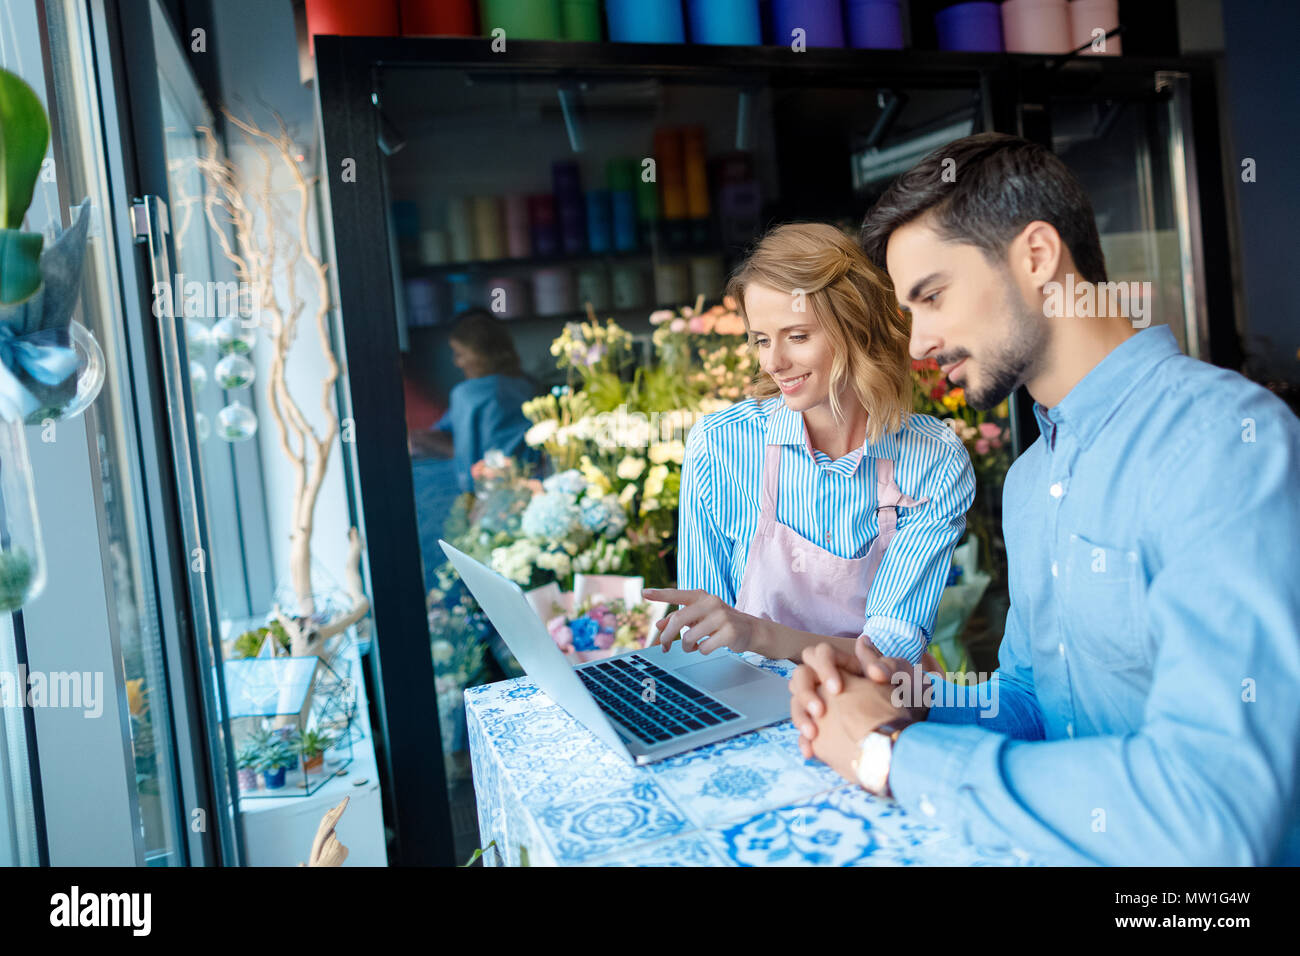 side view of young florist and buyer using laptop in flower shop - Stock Image